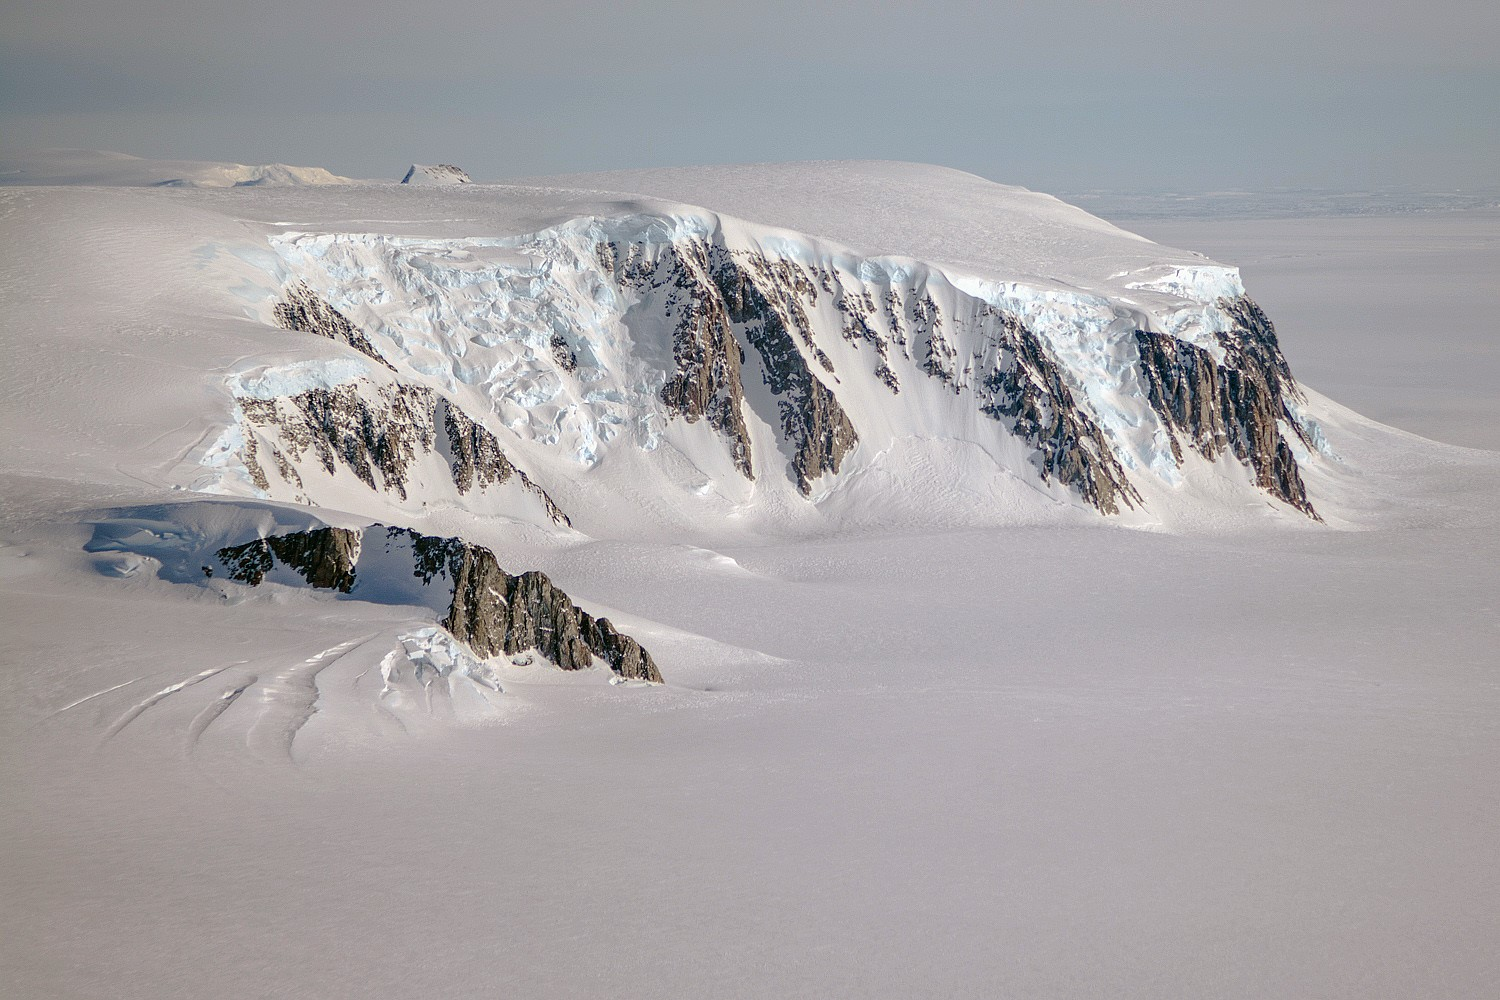 A view of mountains and glaciers in Antarctica's Marie Byrd Land seen during the Nov. 2nd, 2014, IceBridge survey flight. - Image Credit: NASA / Michael Studinger